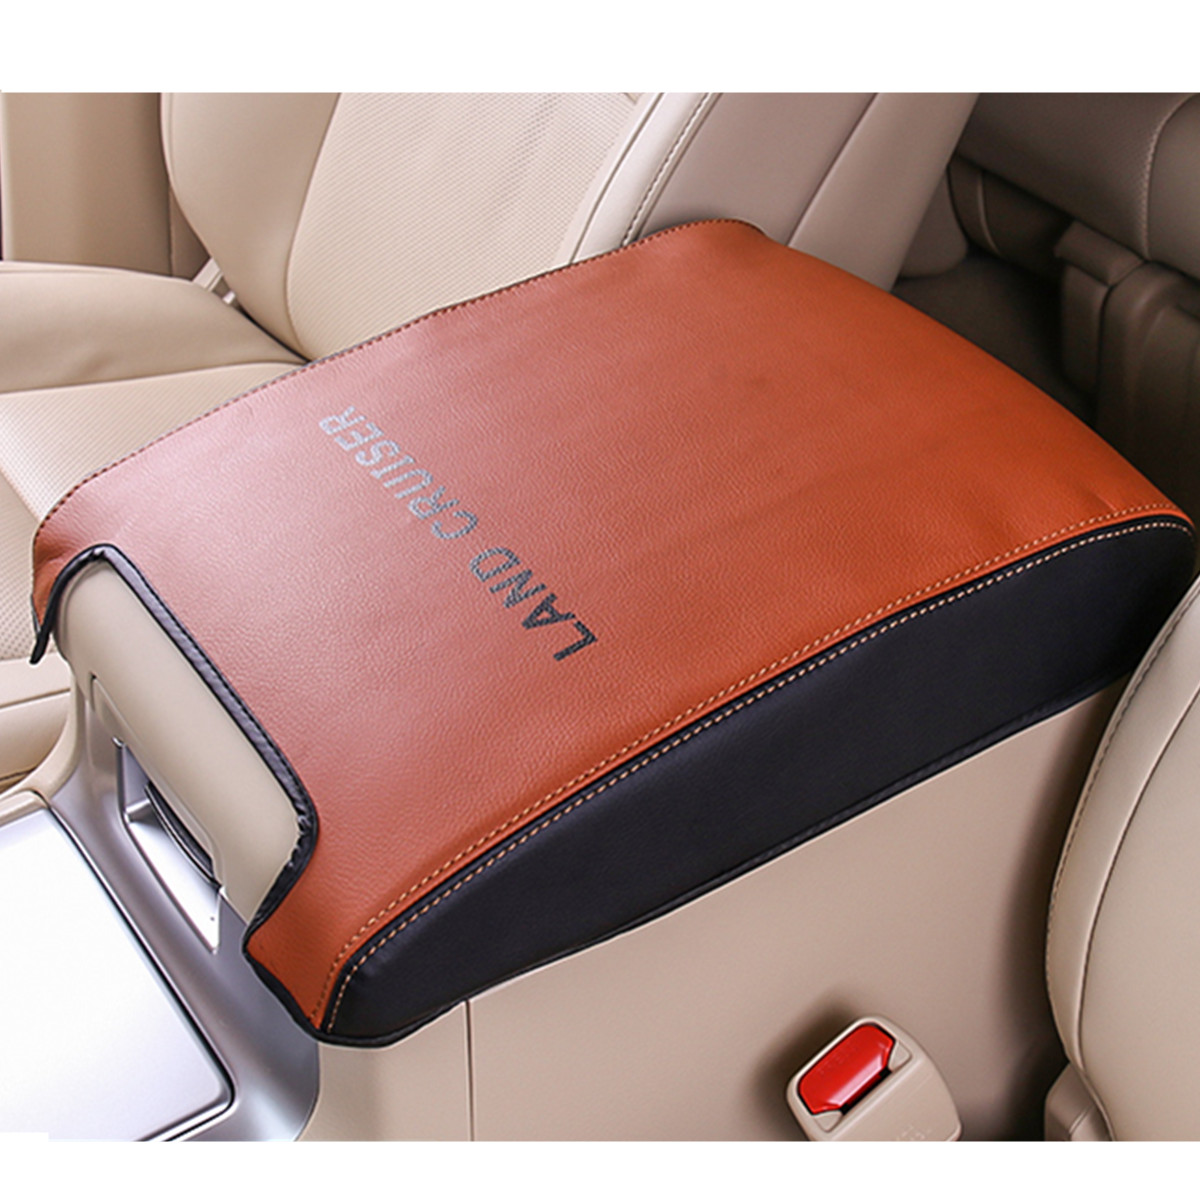 Image 3 - Leather Car Armrest Case Cover for Toyota Land Cruiser 200 LC200 2008 2009 2010 2011 2012 2013 2014 2015 2016 2017 2018-in Chromium Styling from Automobiles & Motorcycles